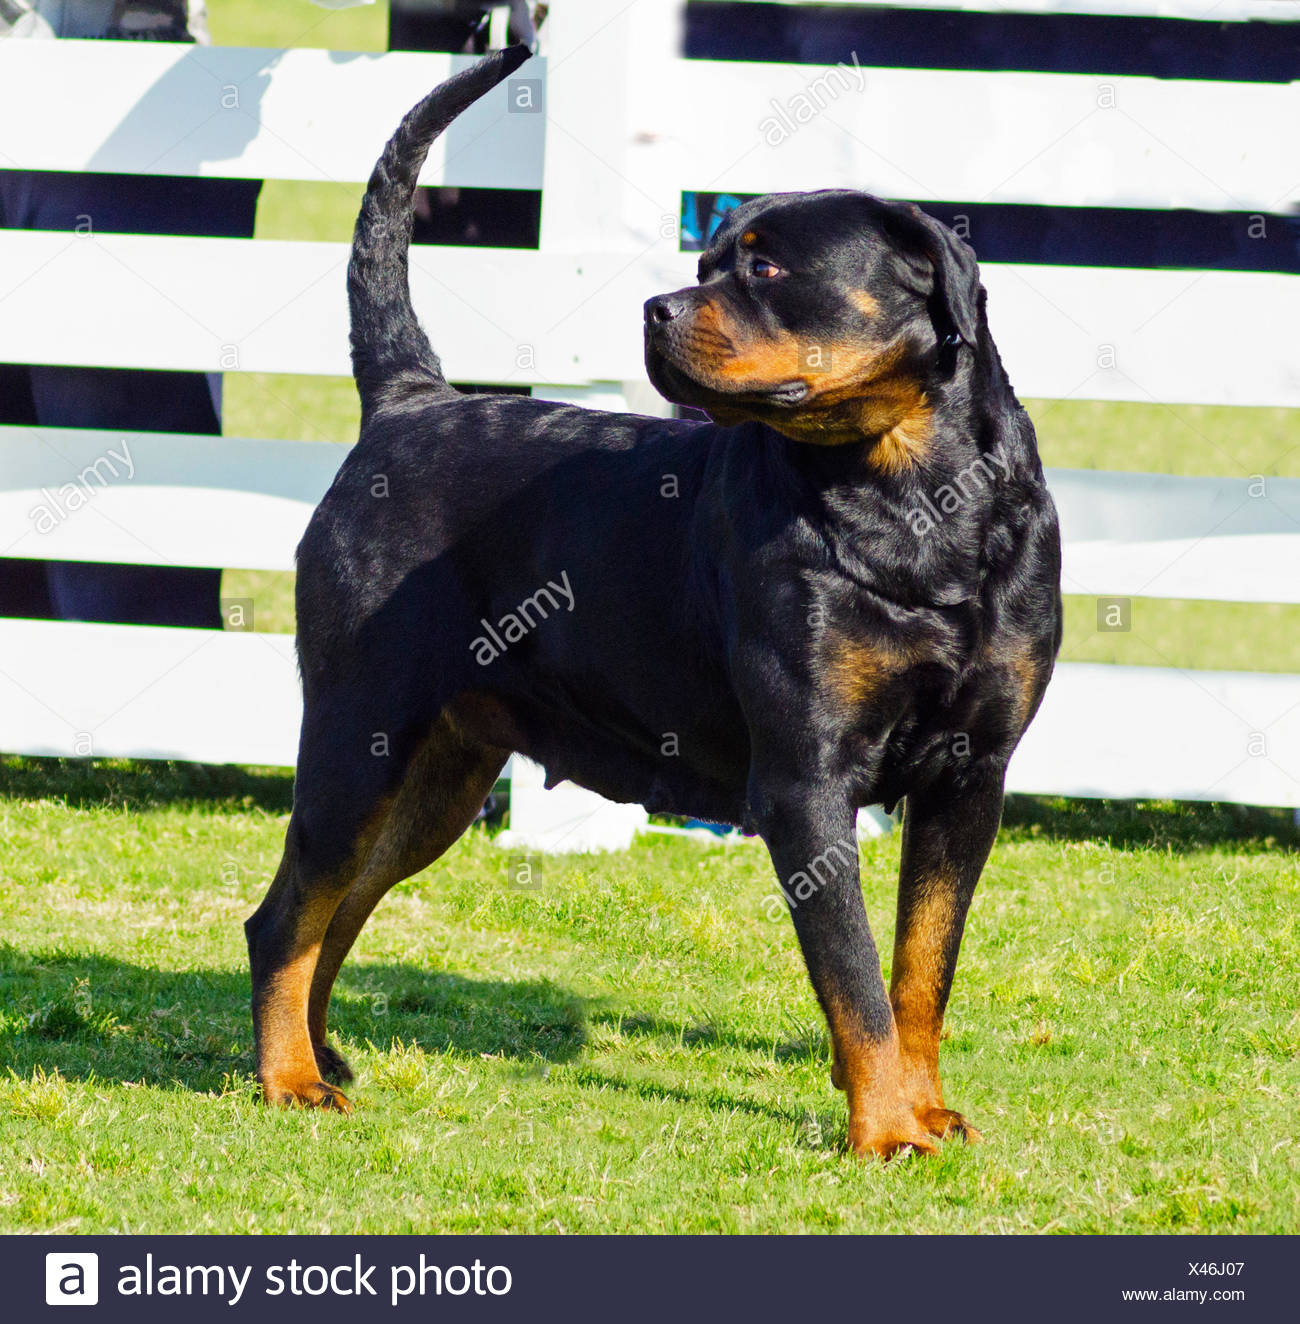 animal guard dog watchdog rottweiler security safety protector walk go going walking friendship beautiful beauteously nice big - Stock Image